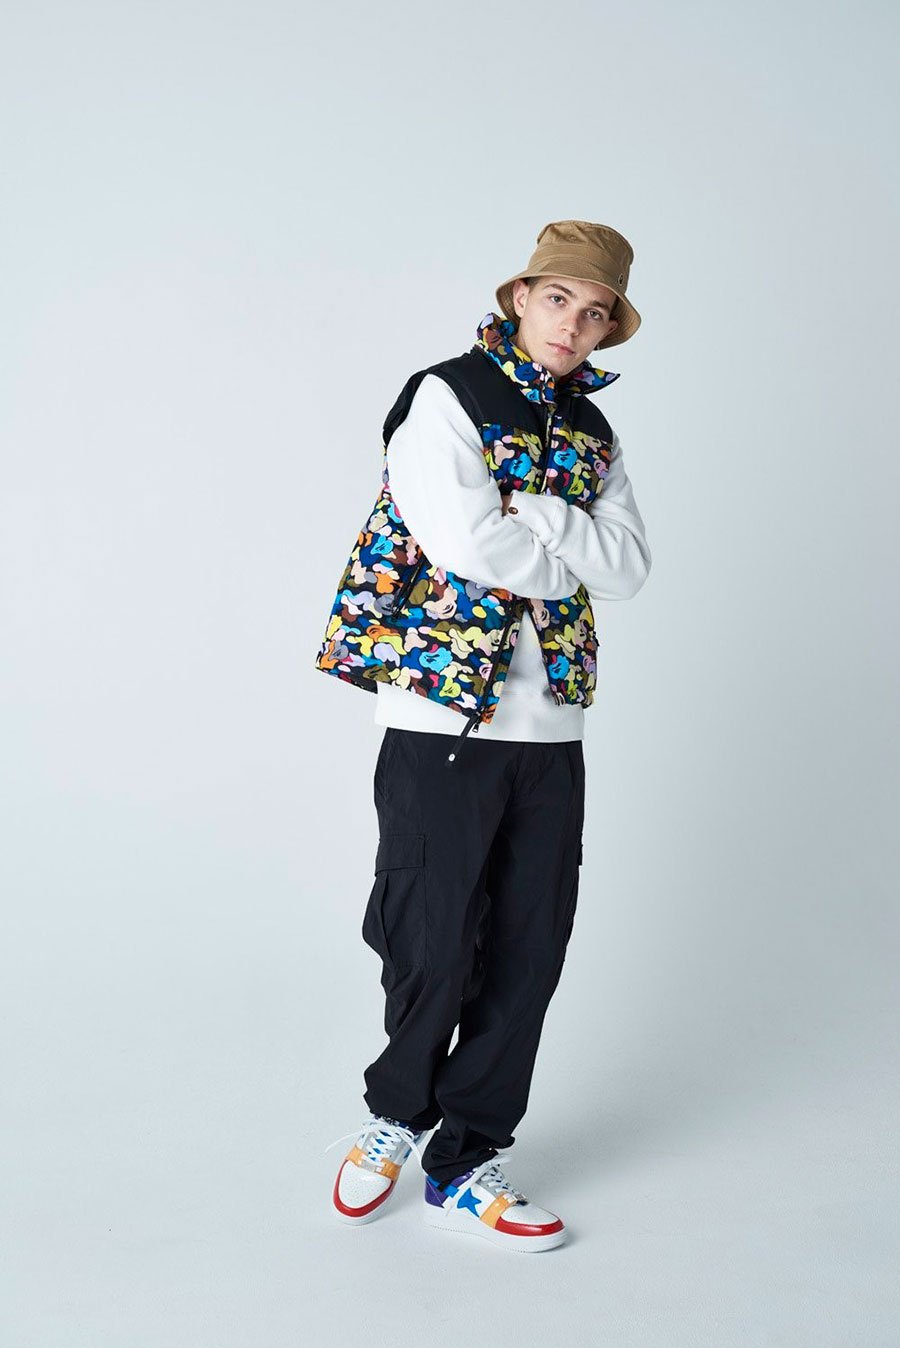 潮牌 A BATHING APE® 发布 2020 最新秋冬男装搭配造型 Lookbook插图(7)